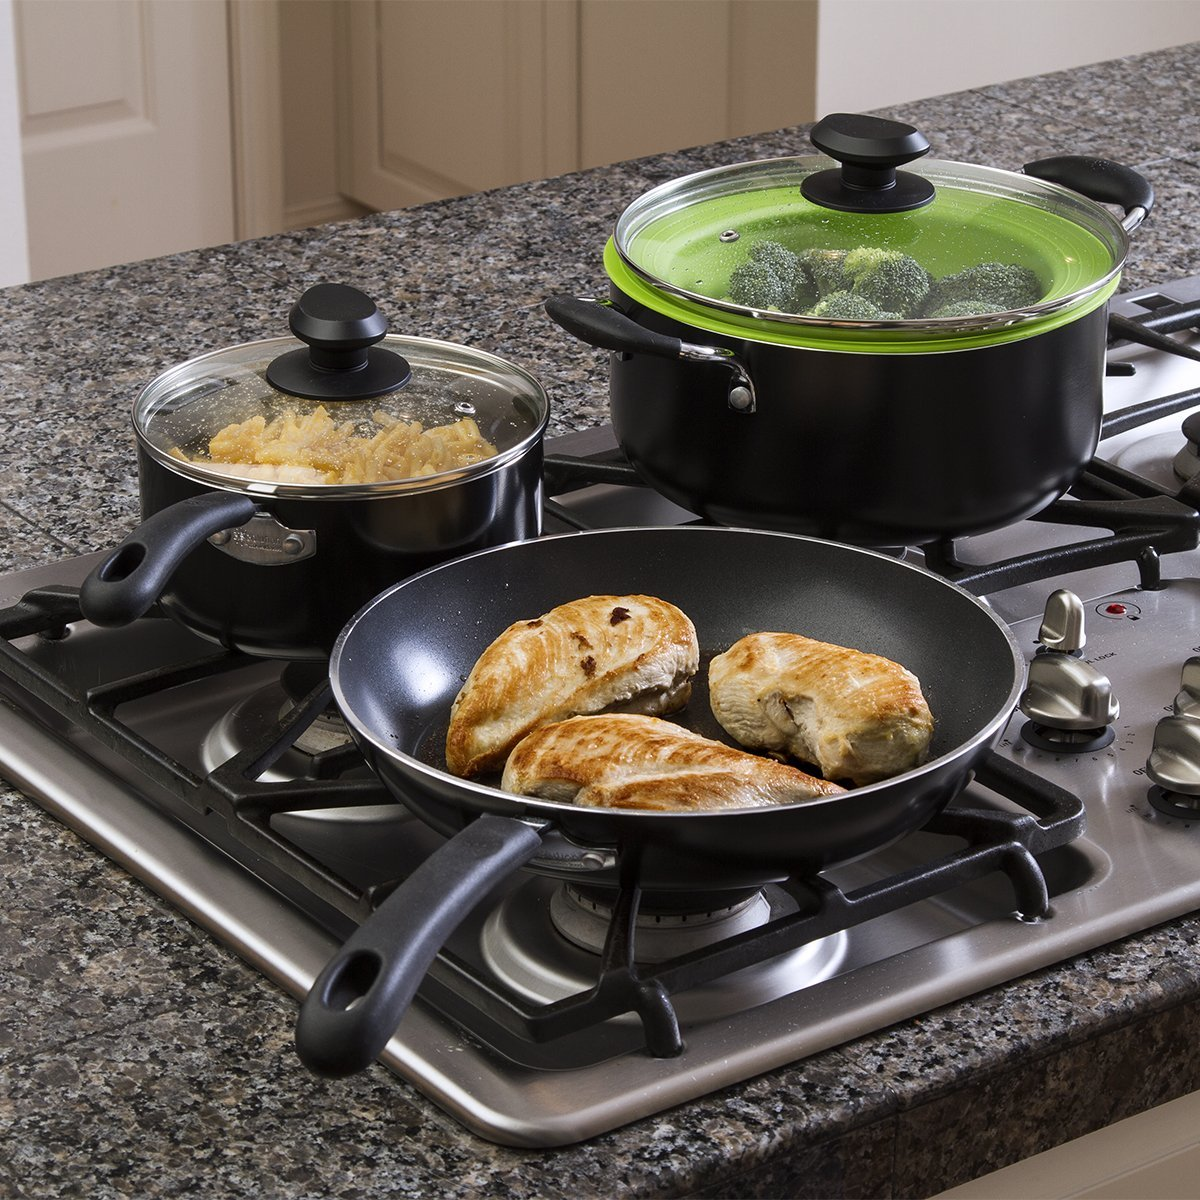 Ecolution Nonstick Cookware Set, 12 Piece -  Heavy Weight, Includes Vented Lids, Steamer, Bamboo Cooking Utensils,  Black by Ecolution (Image #2)